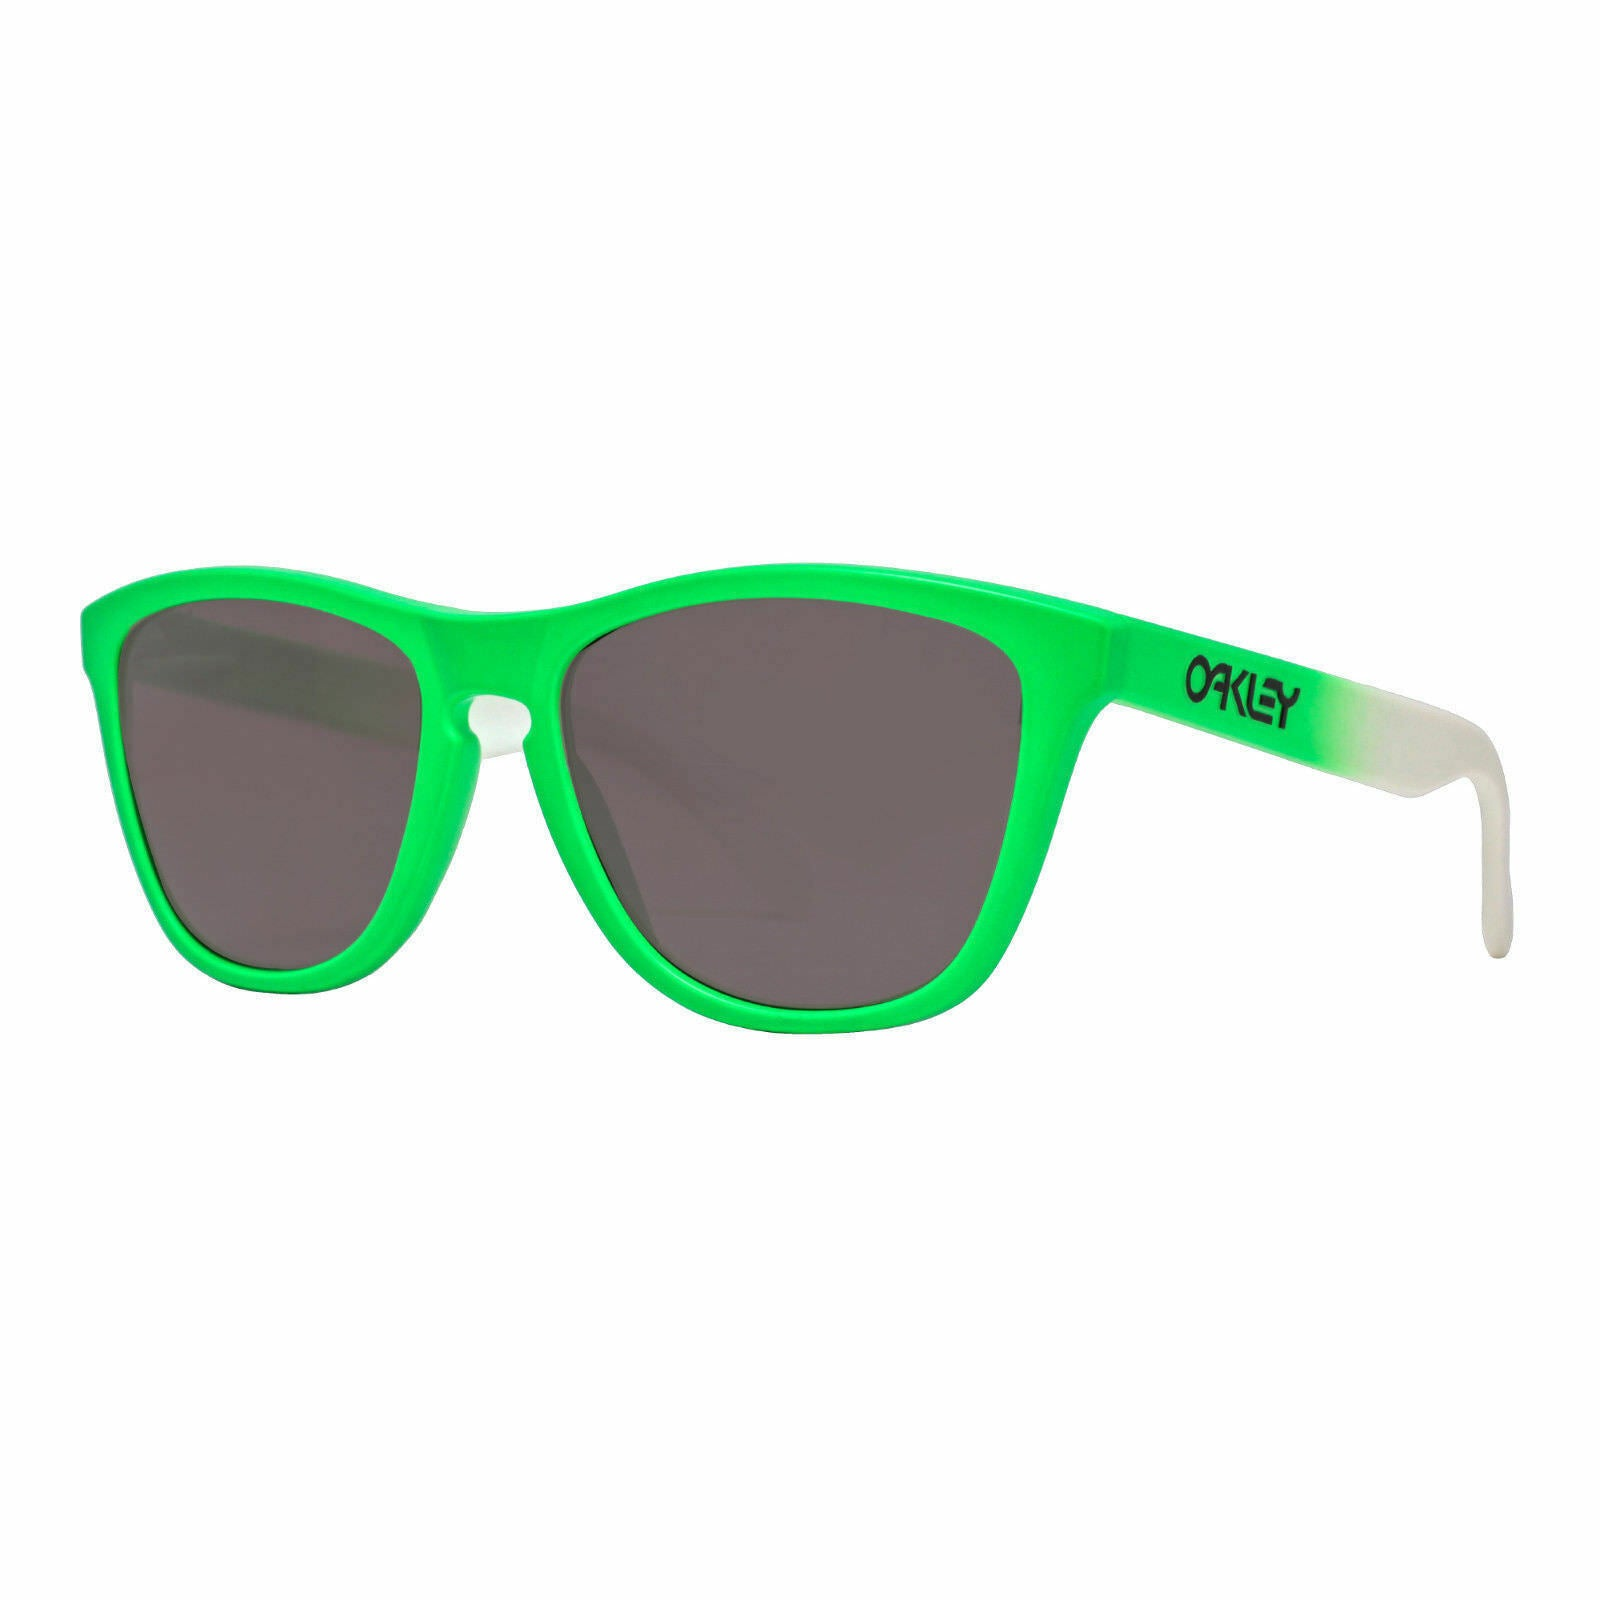 Oakley Frogskins Prizm Polarized Green Fade OO9013-99 Sunglasses - Ships Next Day!